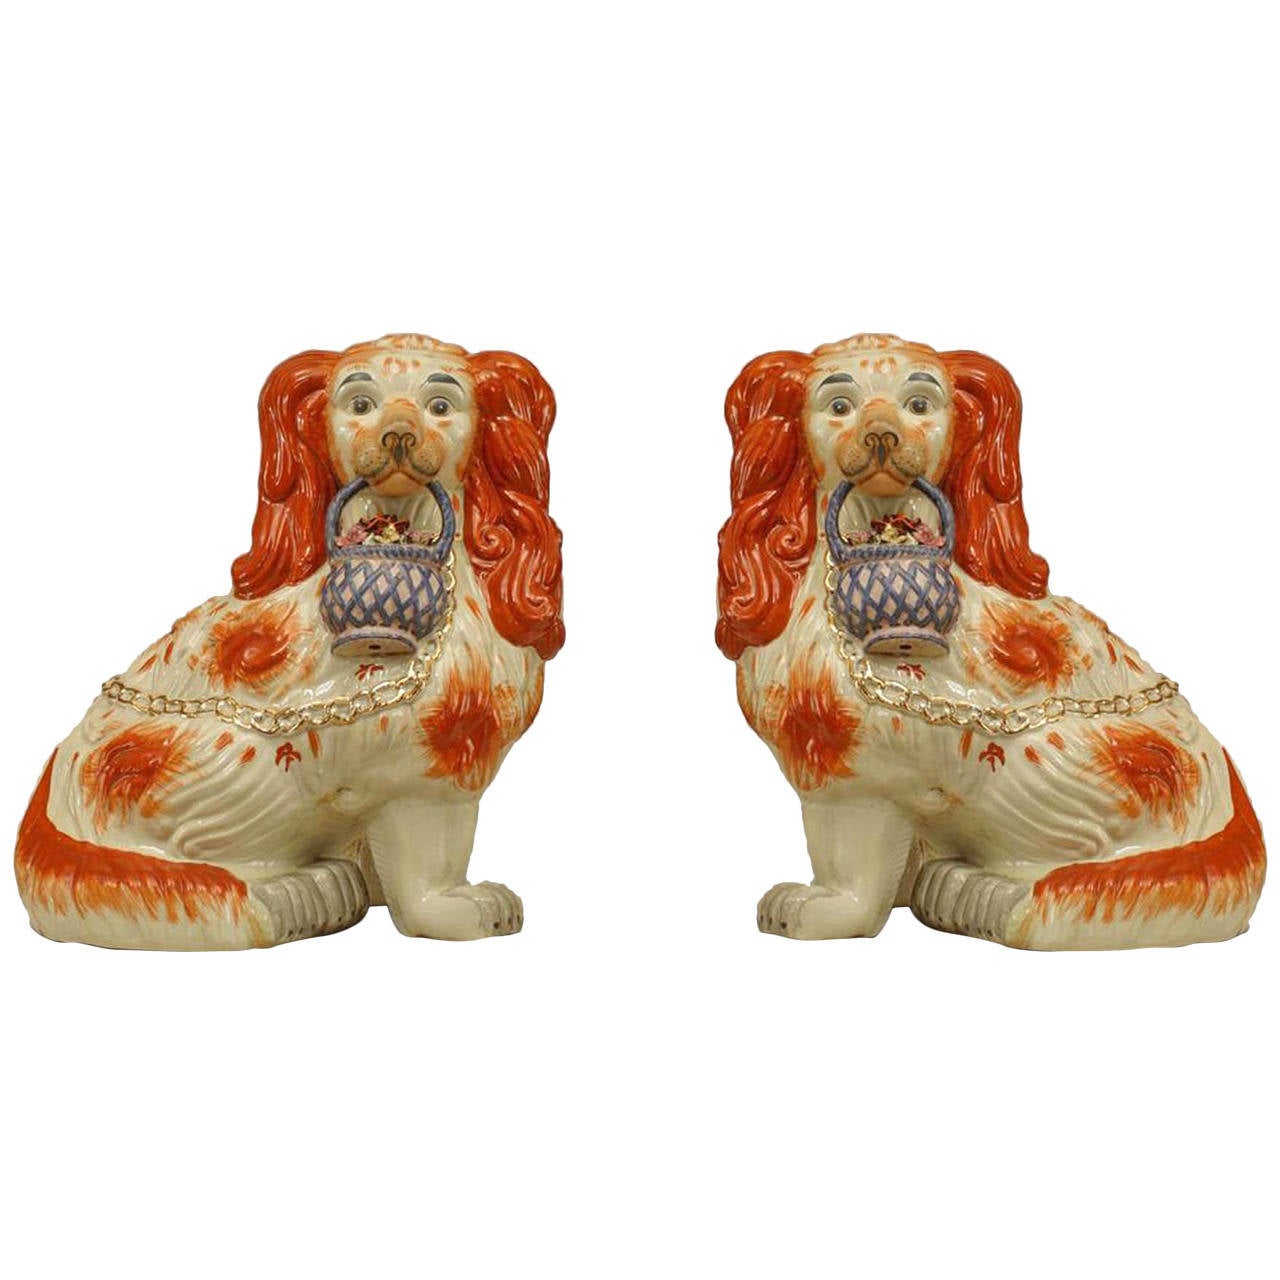 Pair of Early 20th Century English Staffordshire Spaniel Sculptures For Sale